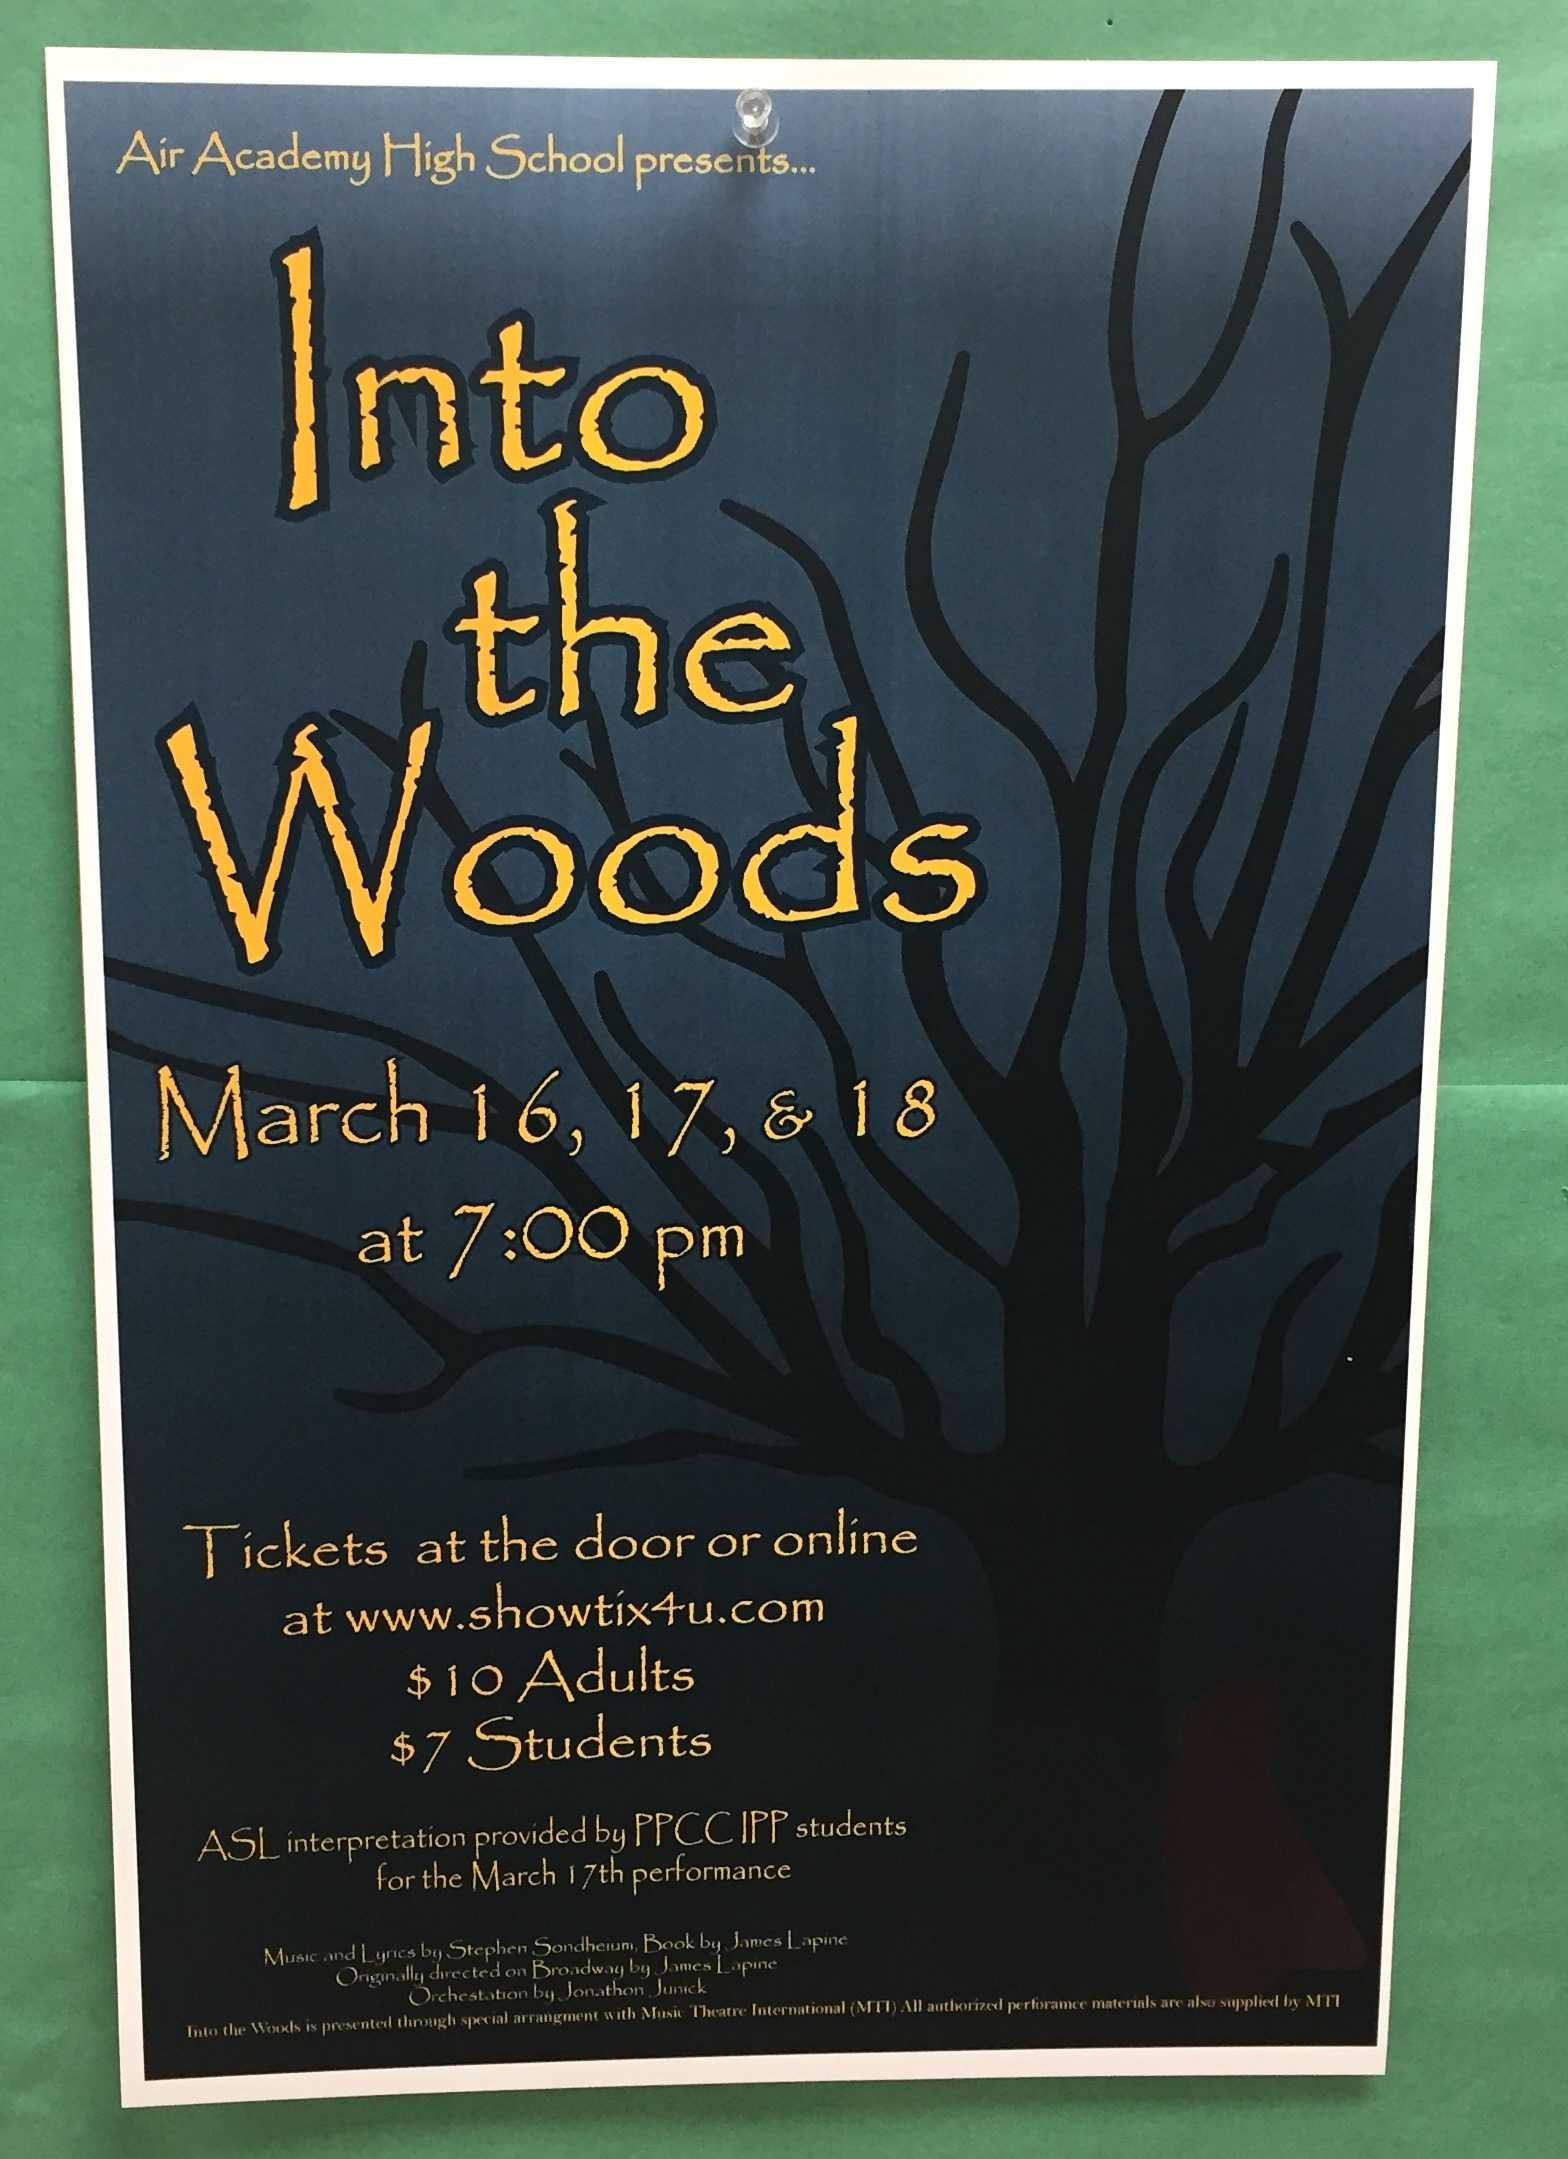 Go see AAHS presentation of Into The Woods